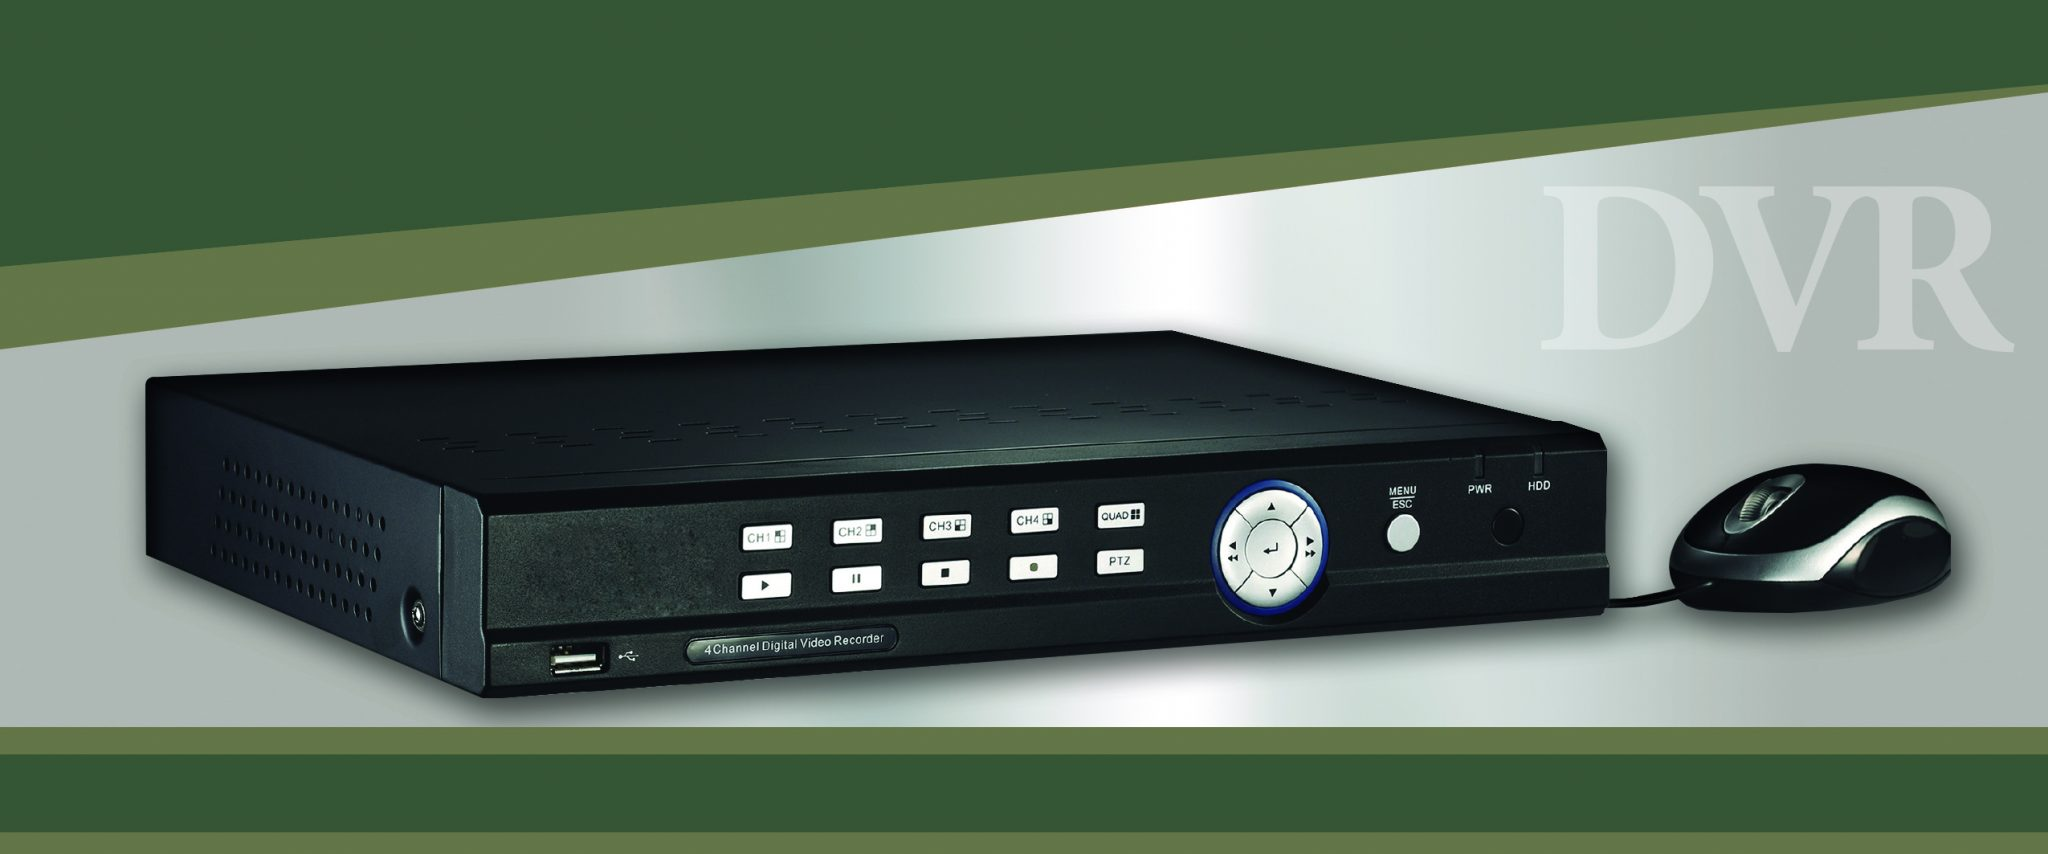 DVR - Security Digital video recorder System - BBG Security